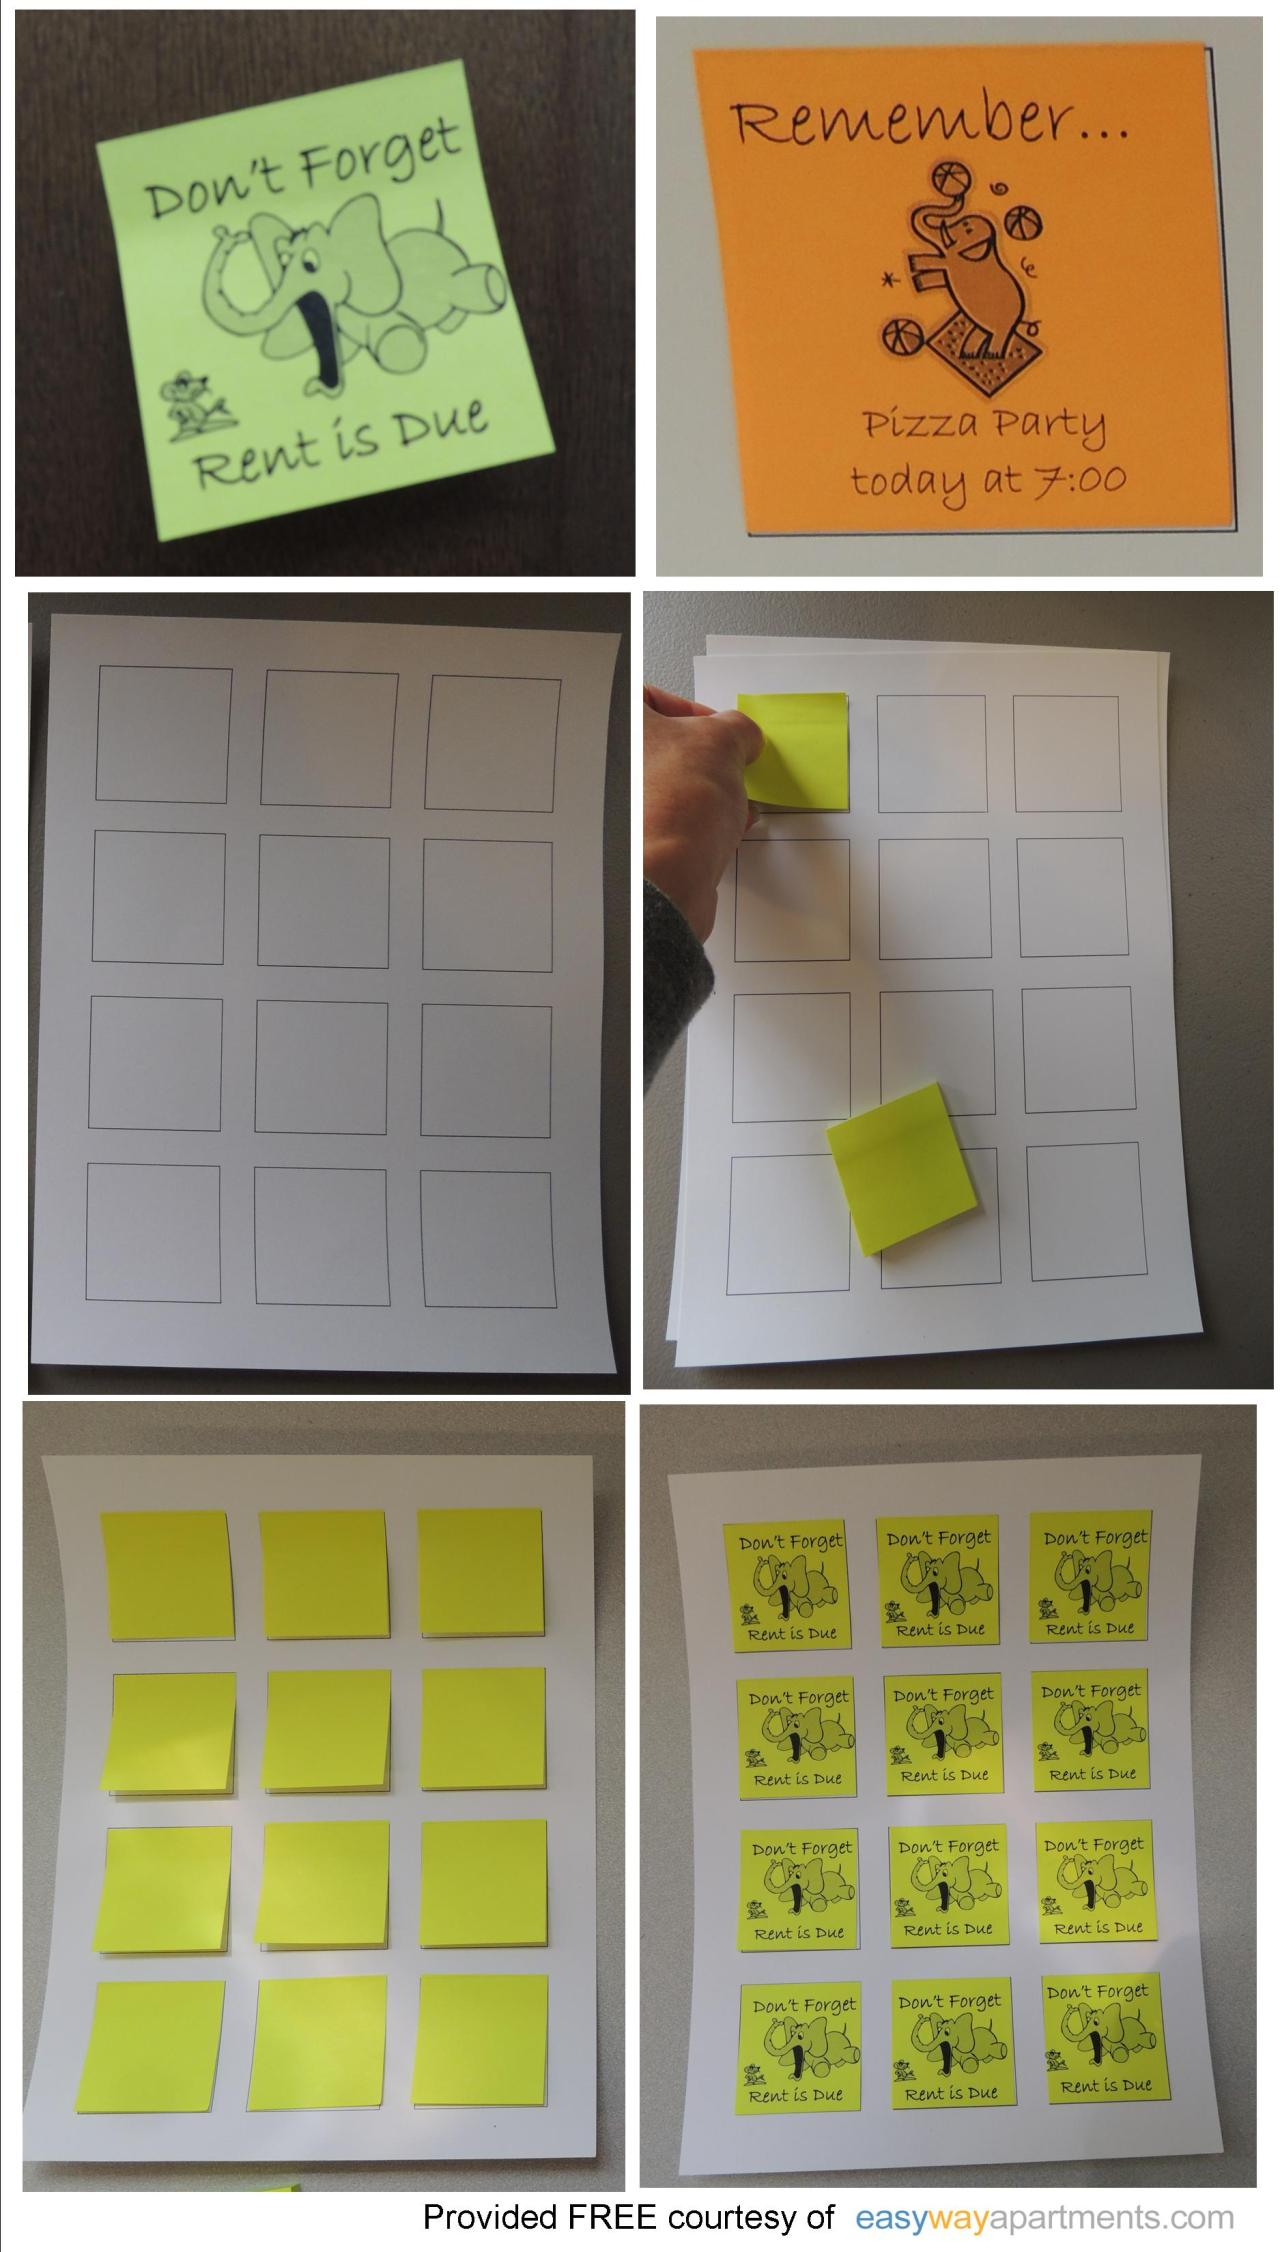 Just it Time For Rent Week, DIY Post It Notes – The Easy Rent Reminder